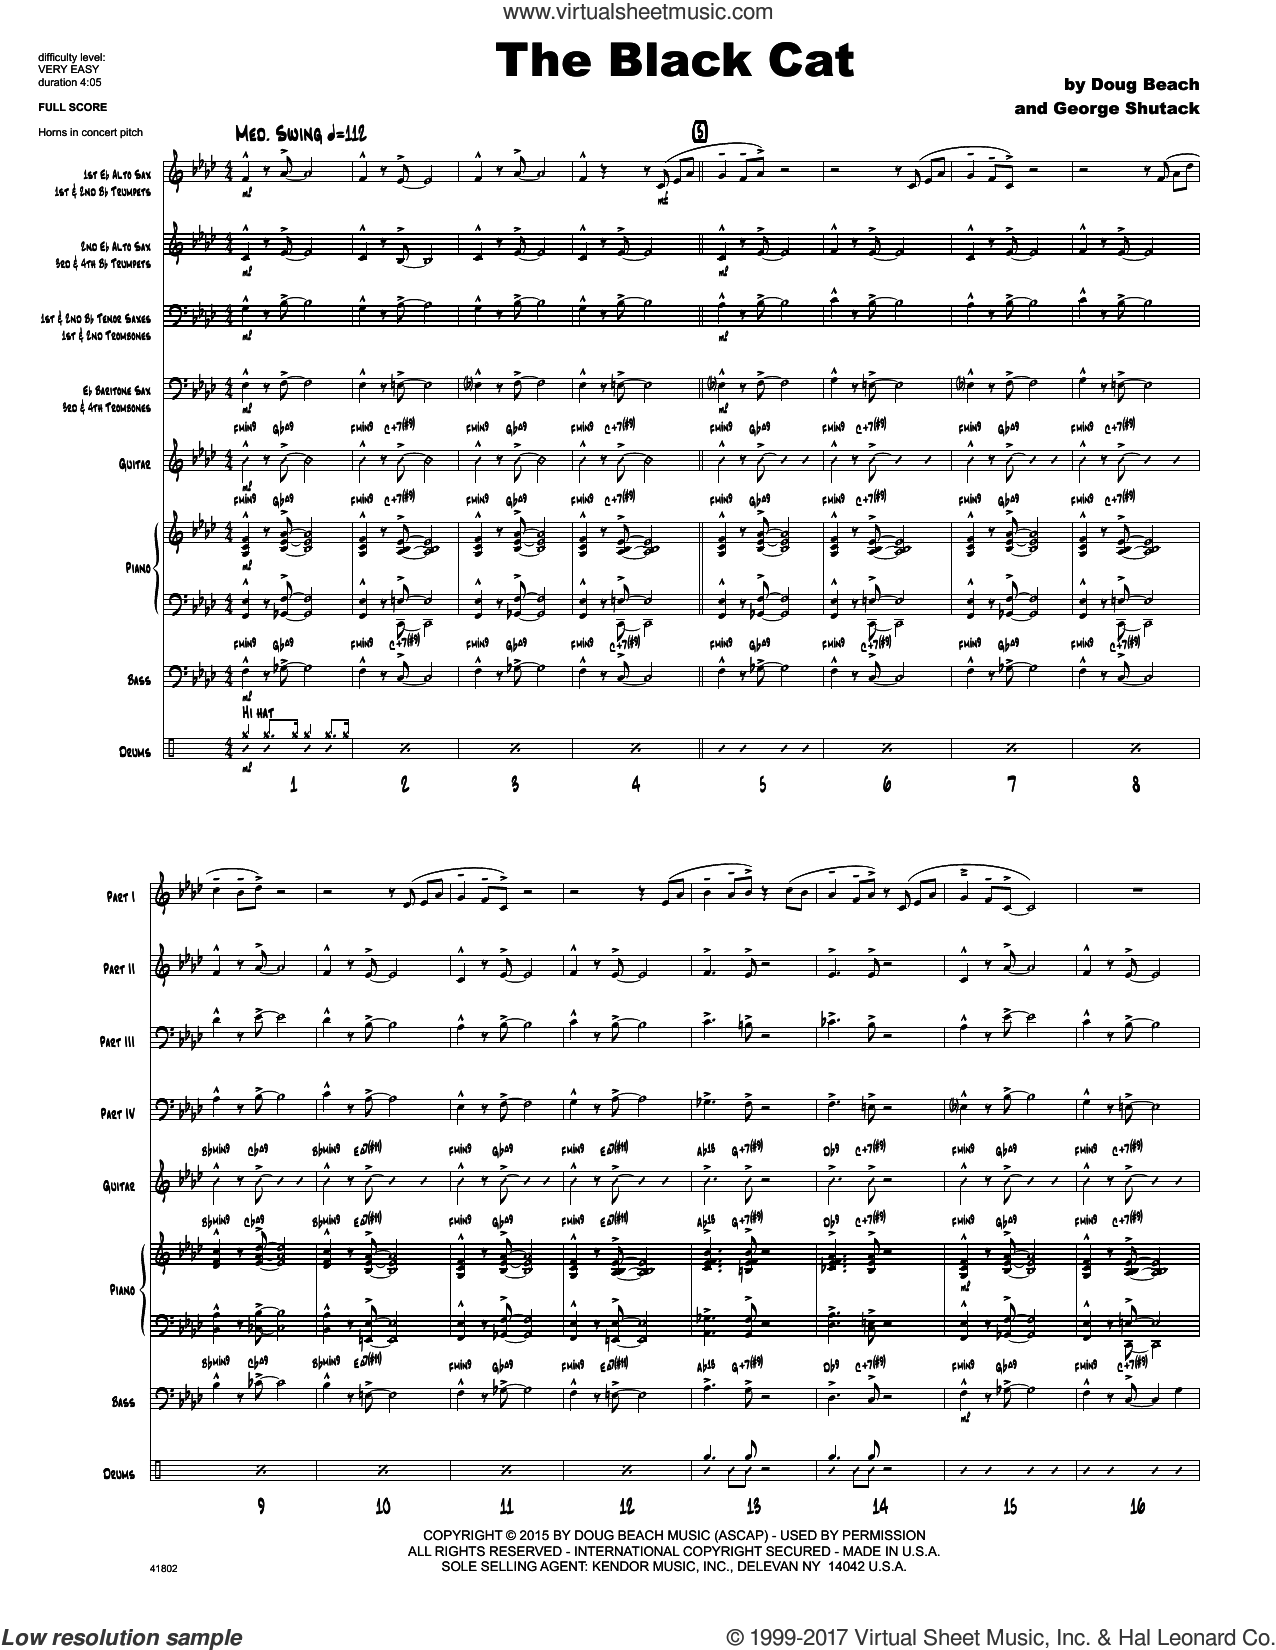 The Black Cat (COMPLETE) sheet music for jazz band by Doug Beach and George Shutack, intermediate skill level